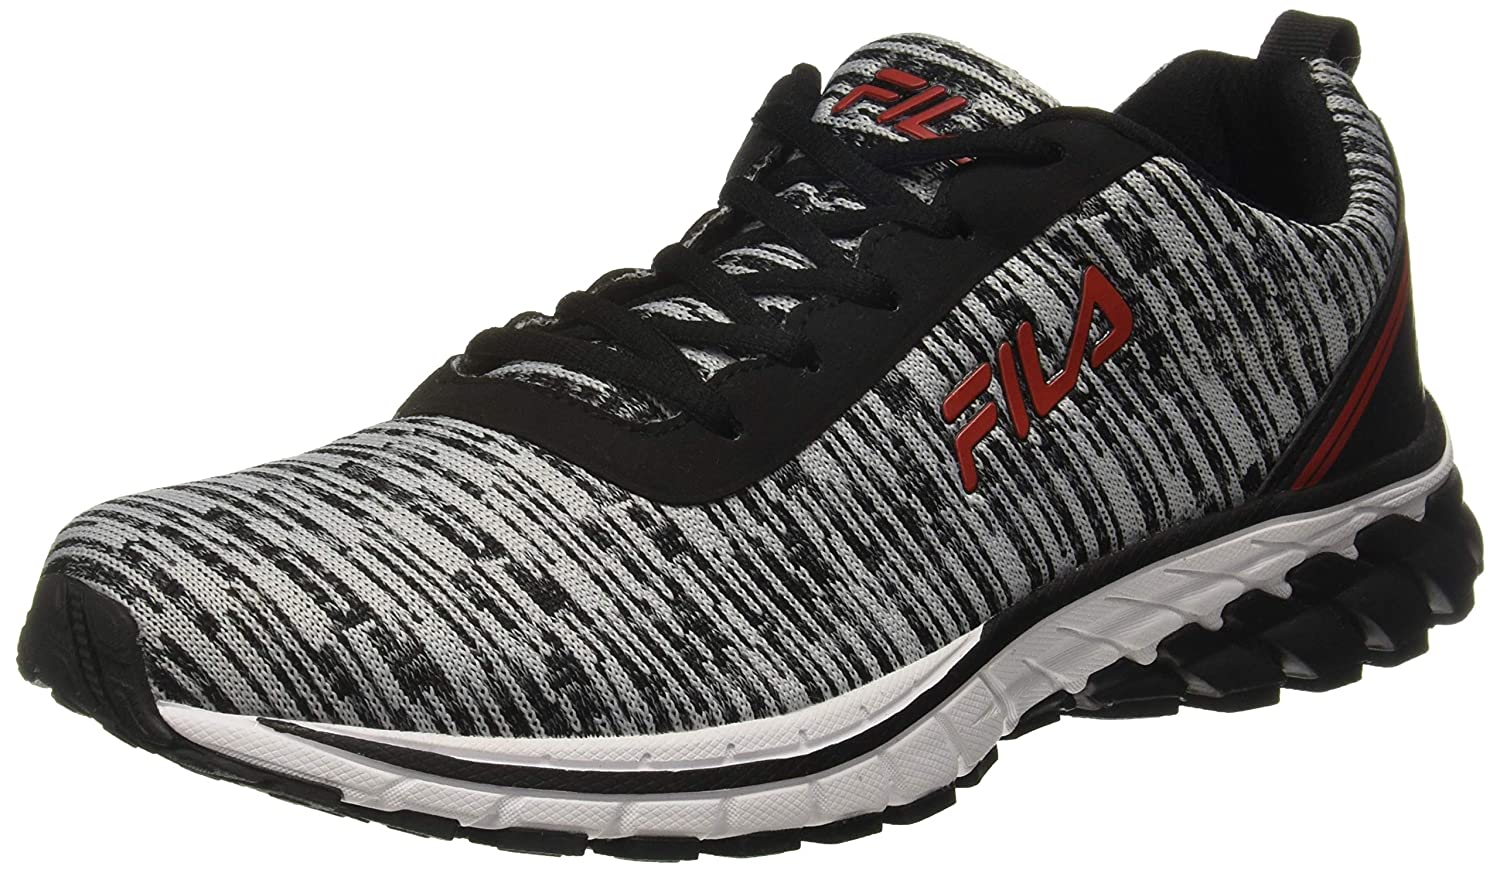 Fila Eclipse Best Branded Running Shoes for Men in India 2019